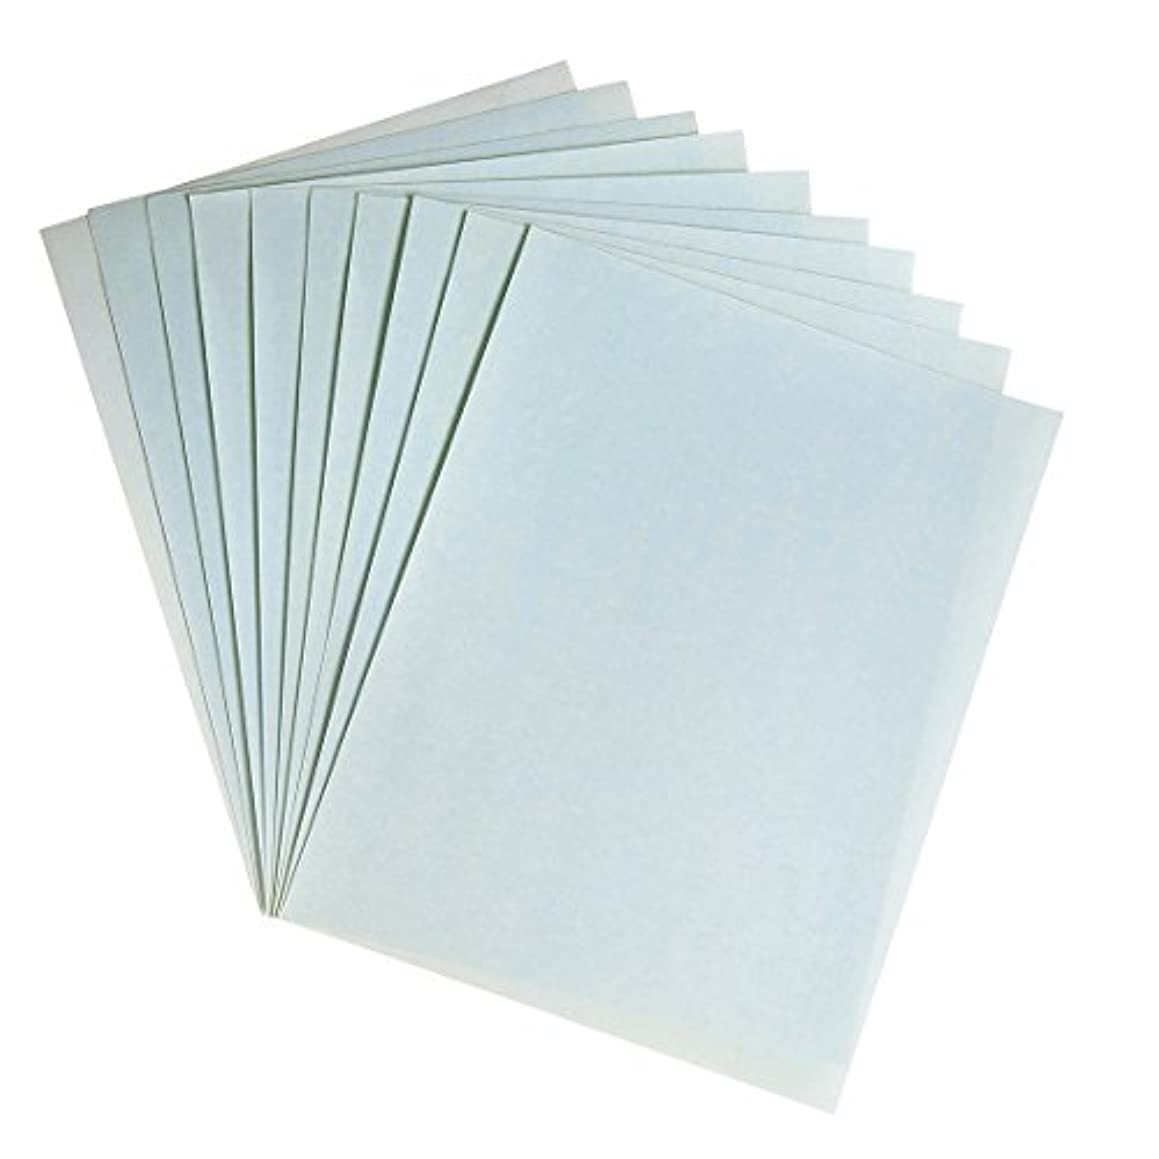 Hygloss Products 27255 5 Sheets White Velour cardstock,